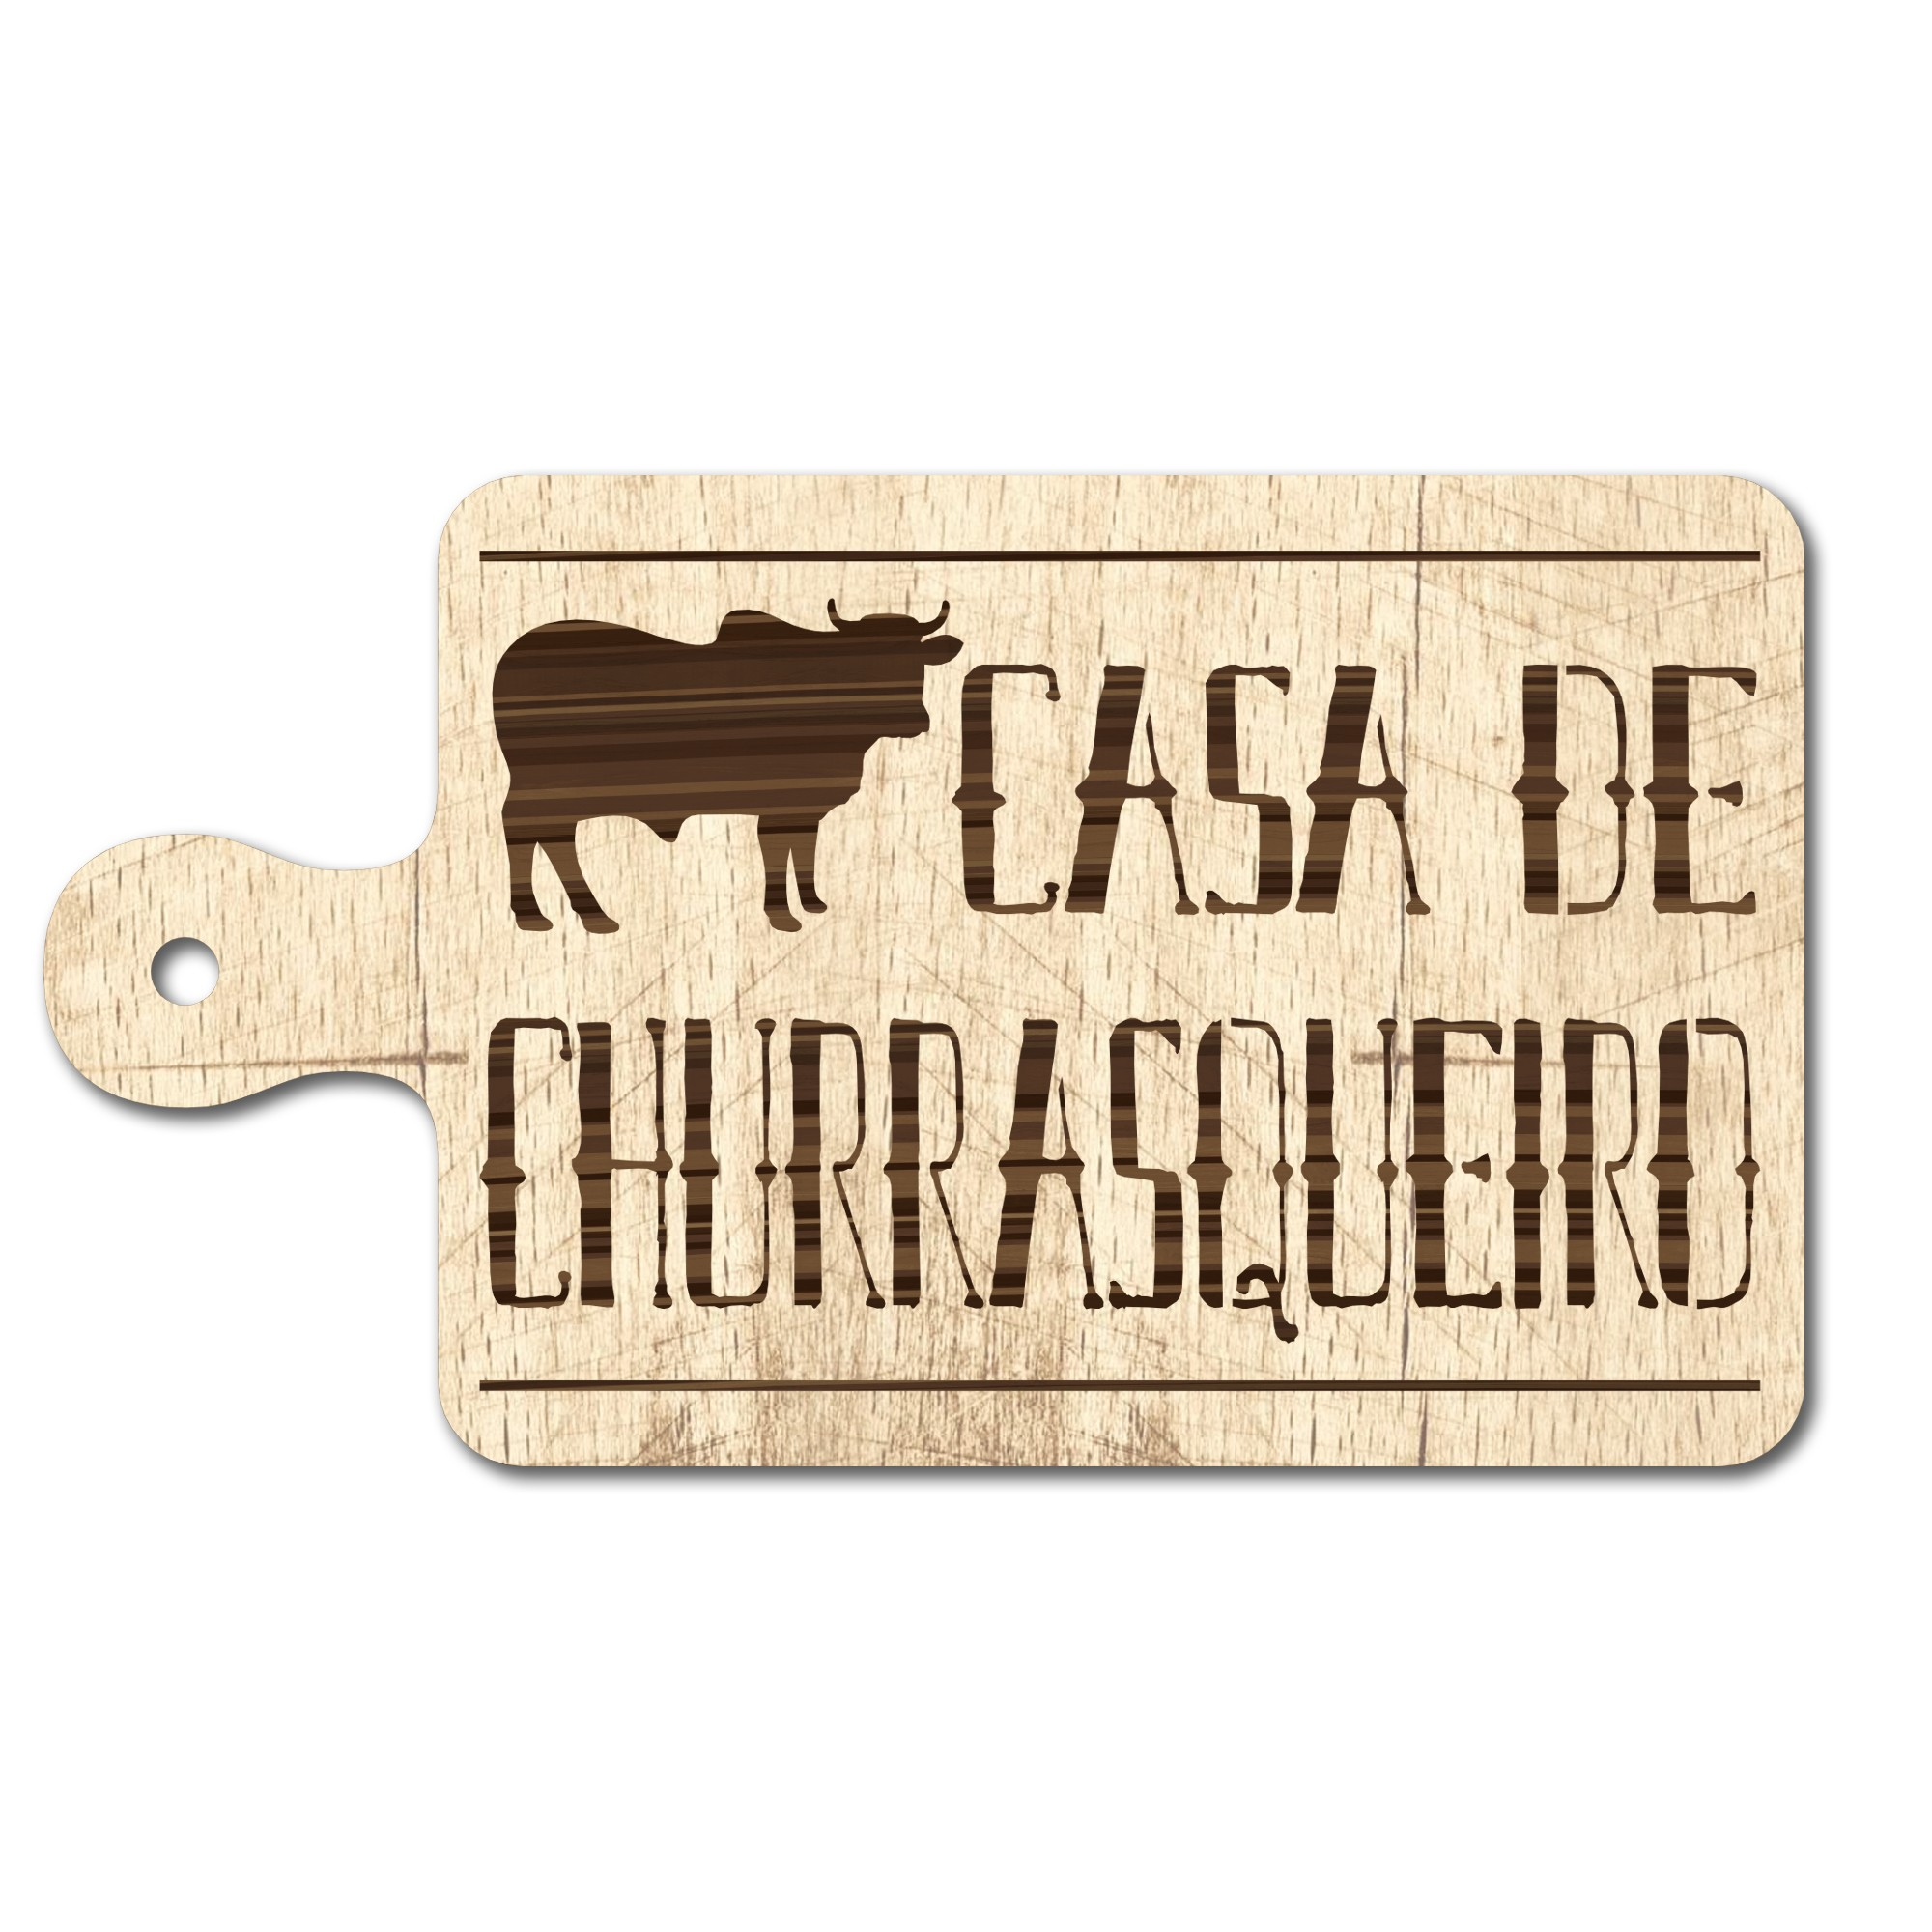 Placa Decorativa Madeira 33x18cm Casa do Churrasqueiro - Cia Laser